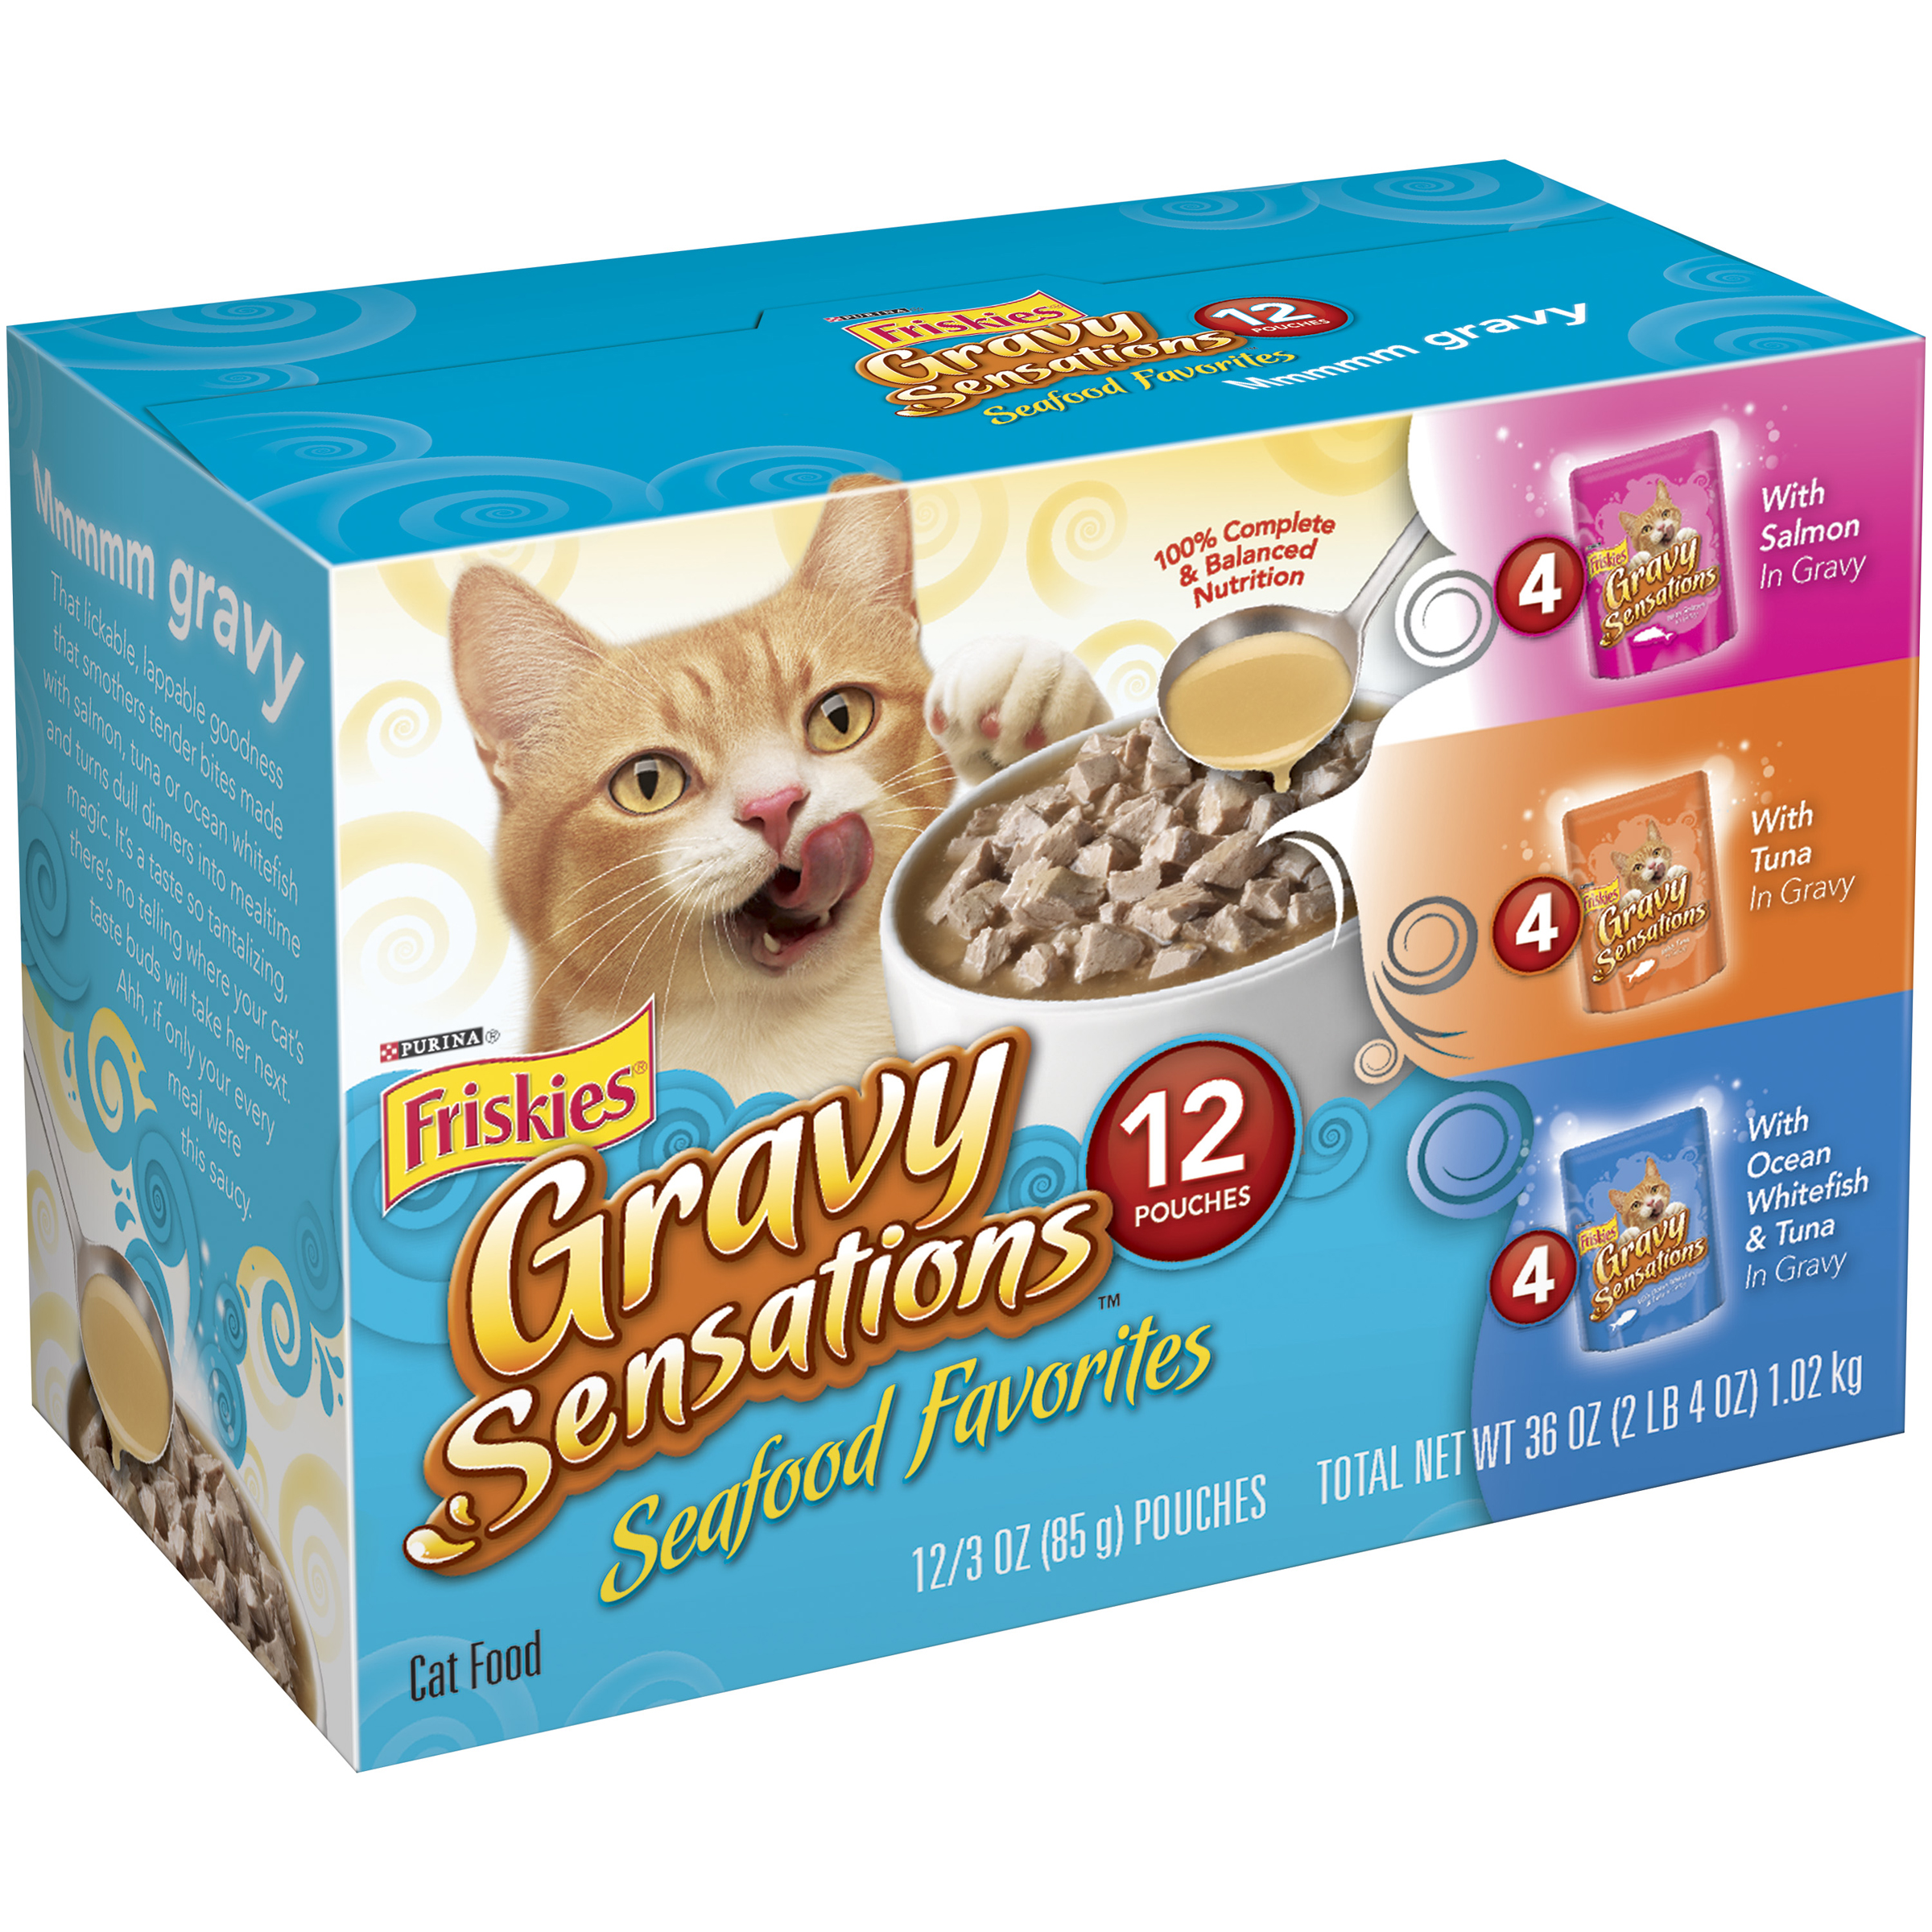 Purina Friskies Gravy Sensations Seafood Favorites Cat Food Variety Pack 12-3 oz. Pouches